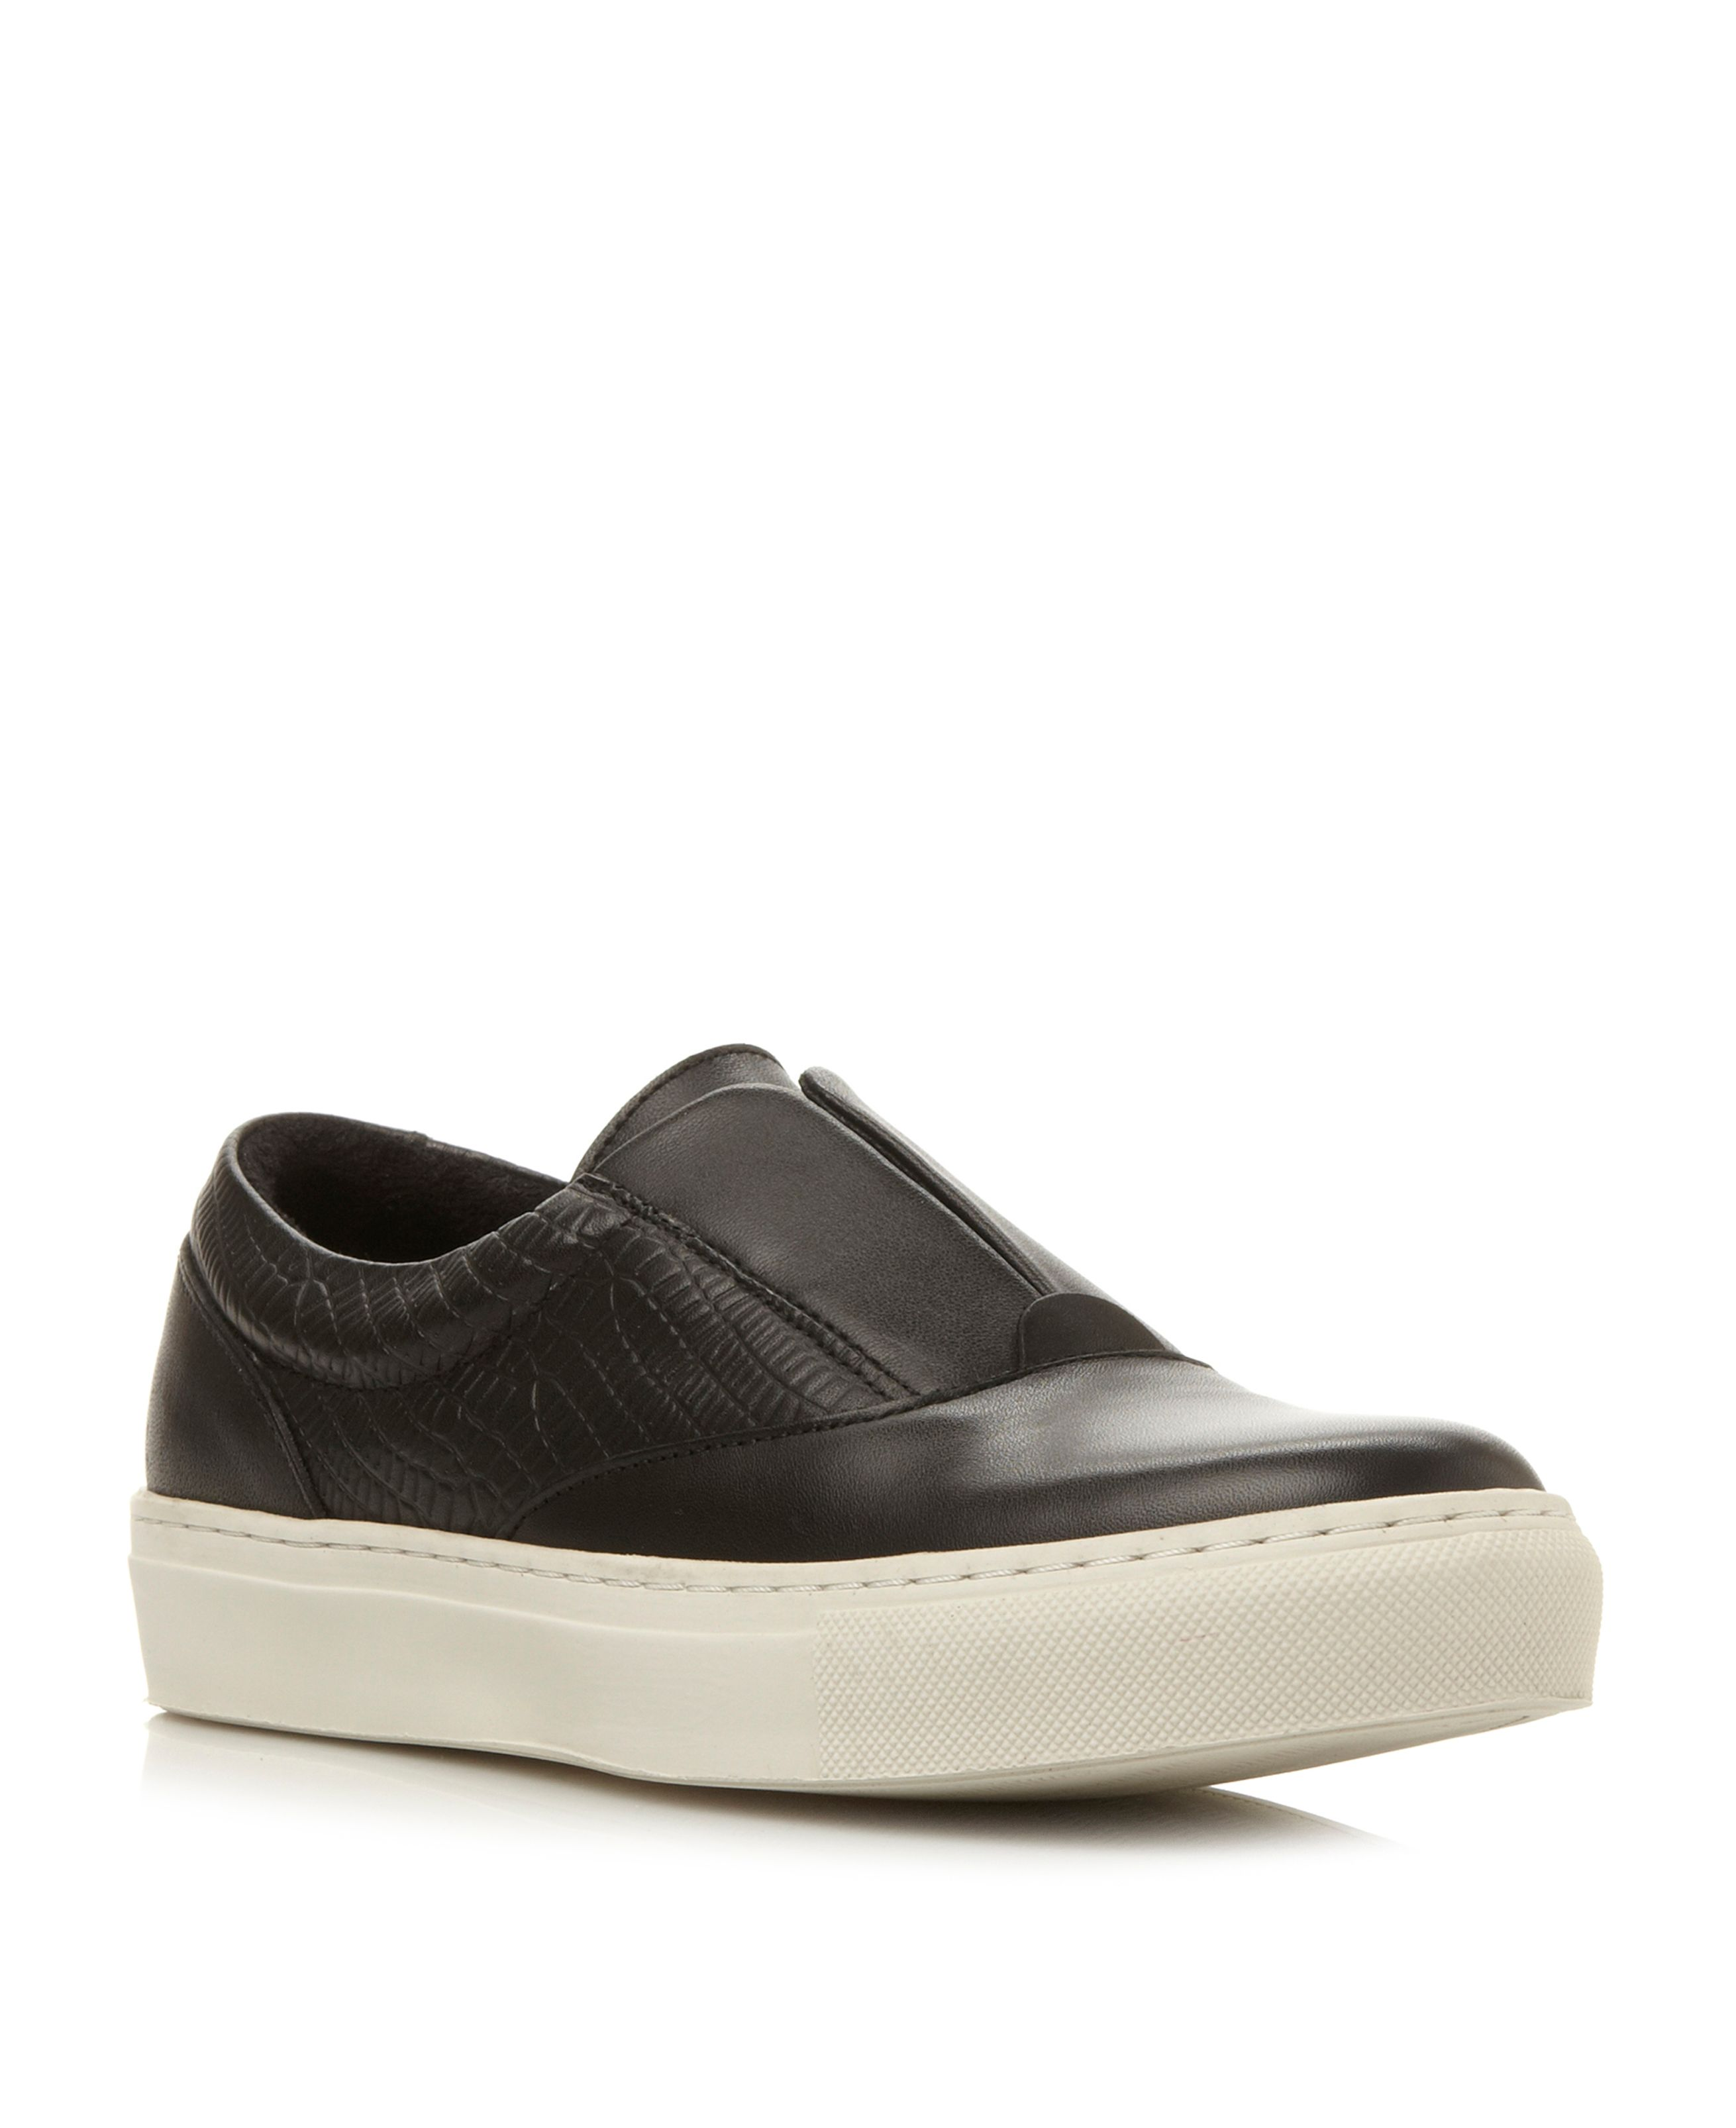 Lastic elastic slip on trainers